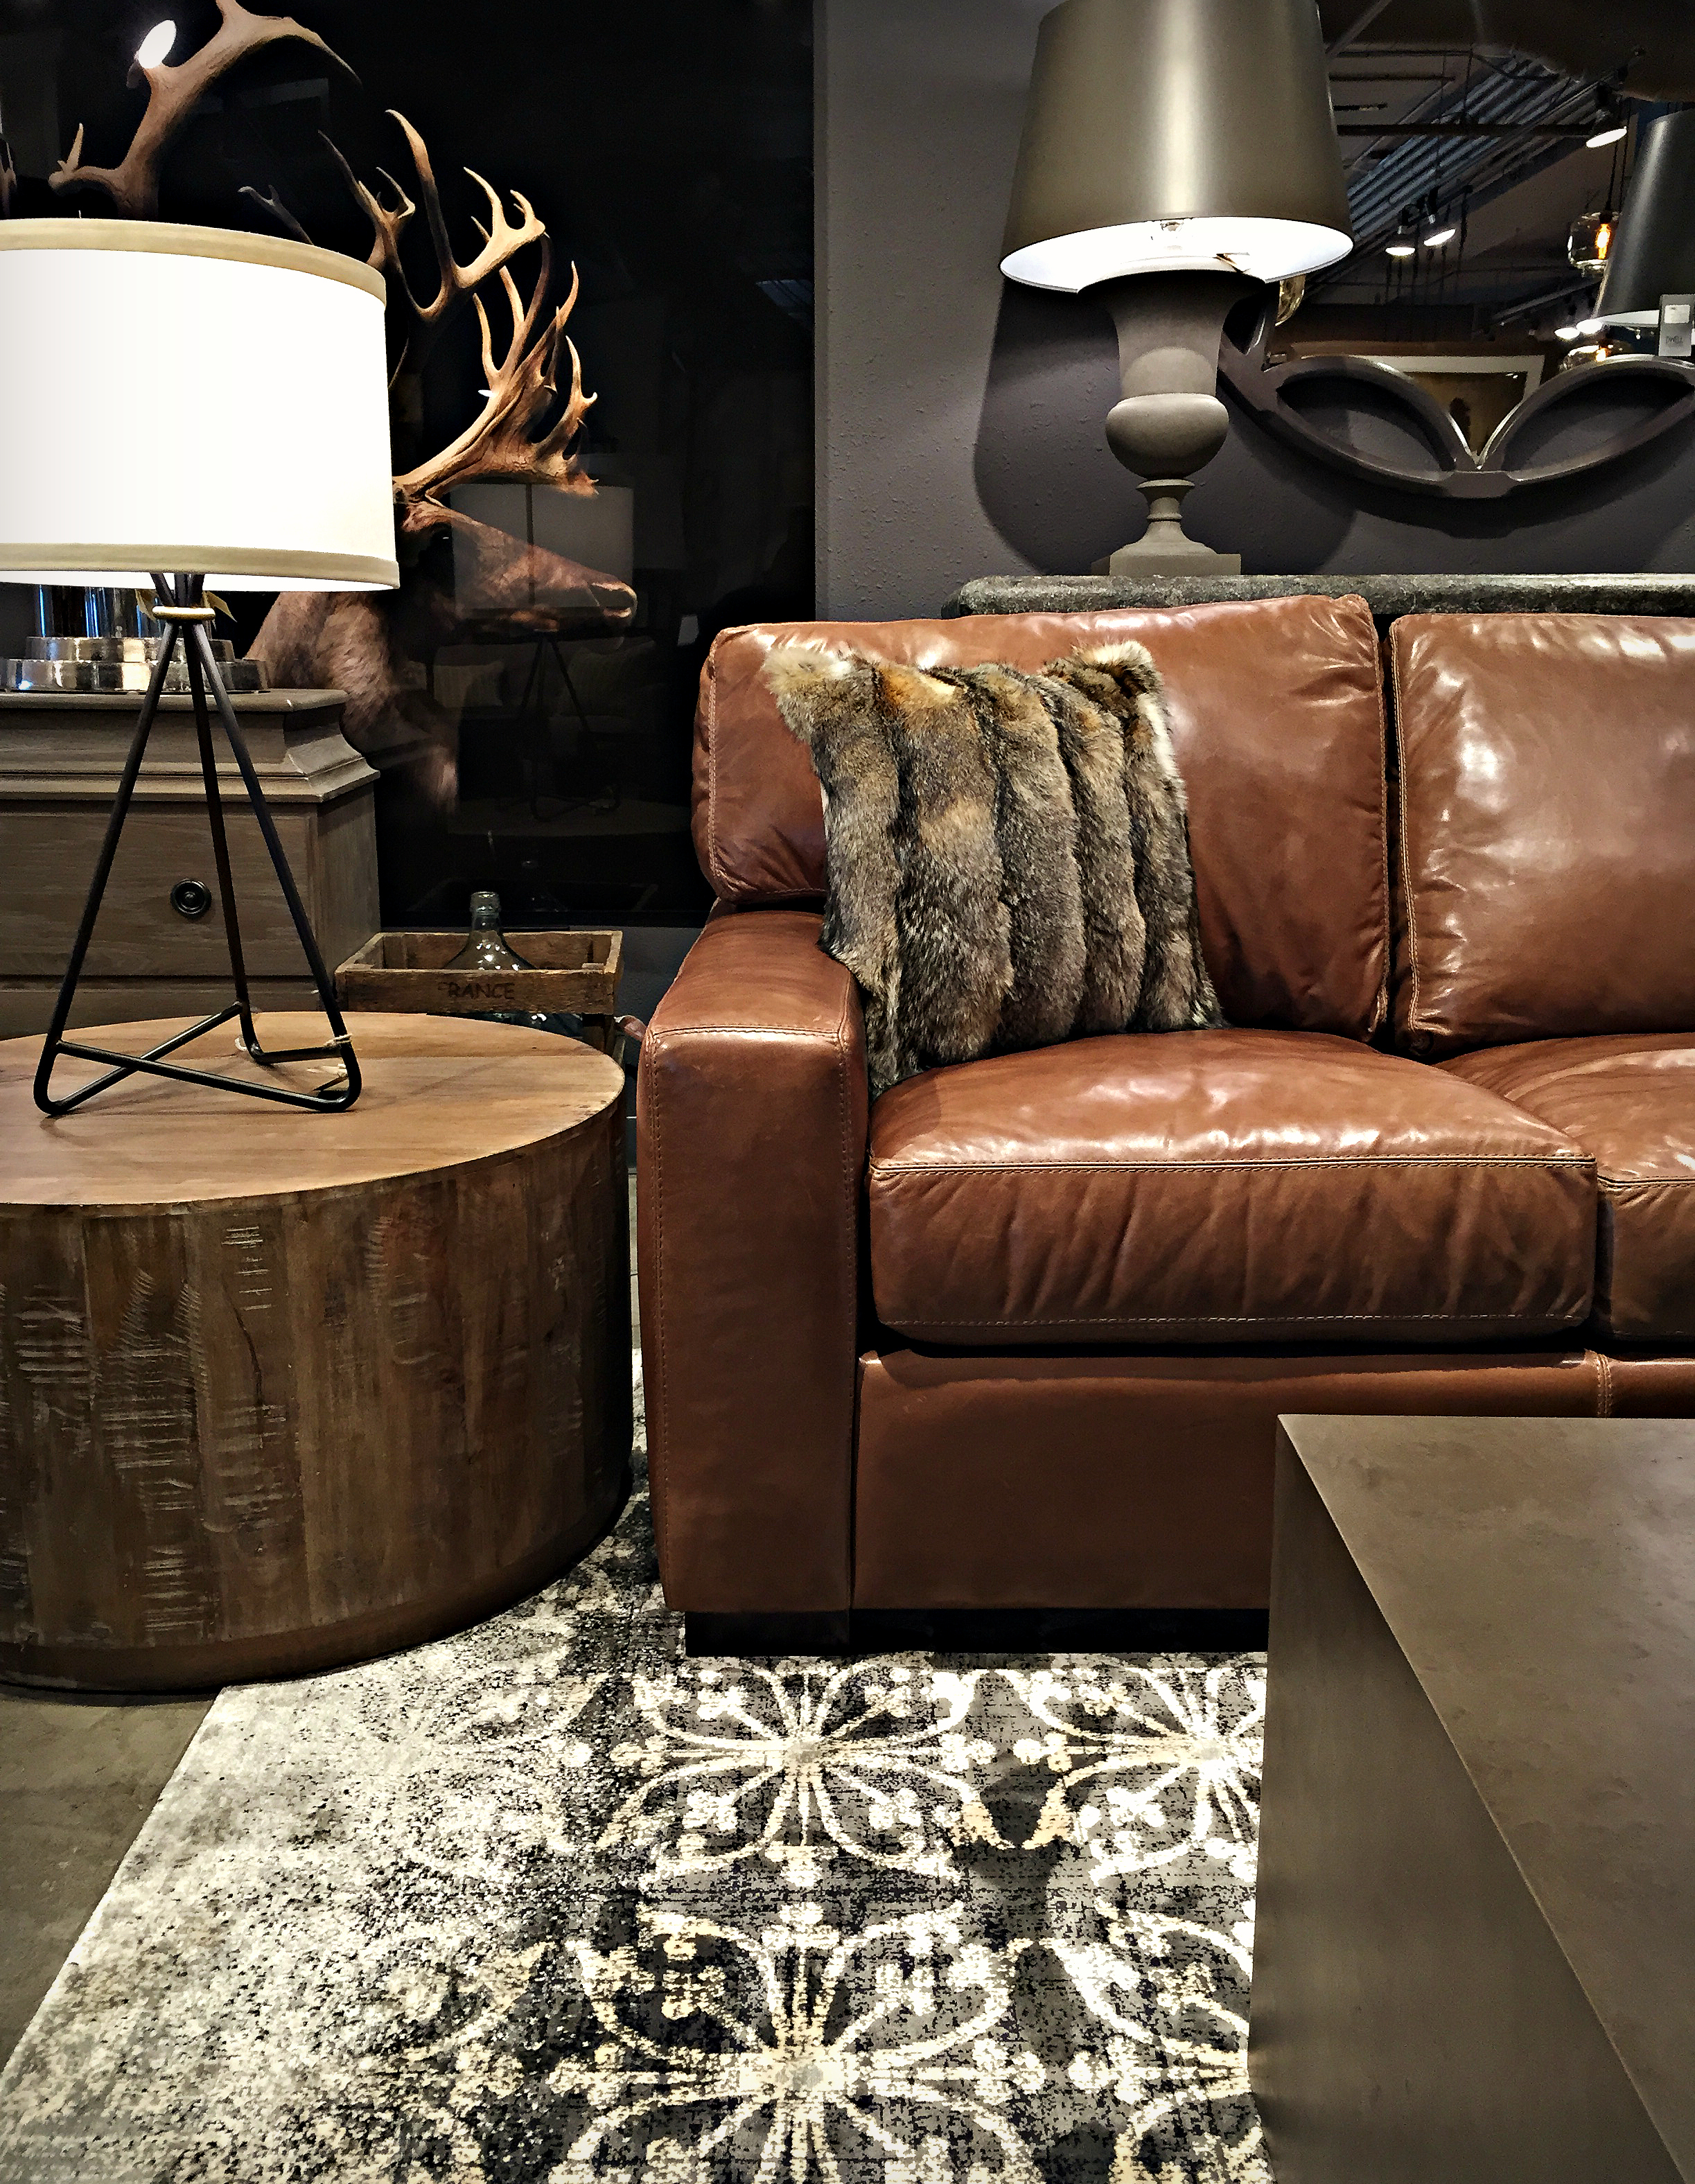 Use Patterns And Textures In Interior Design